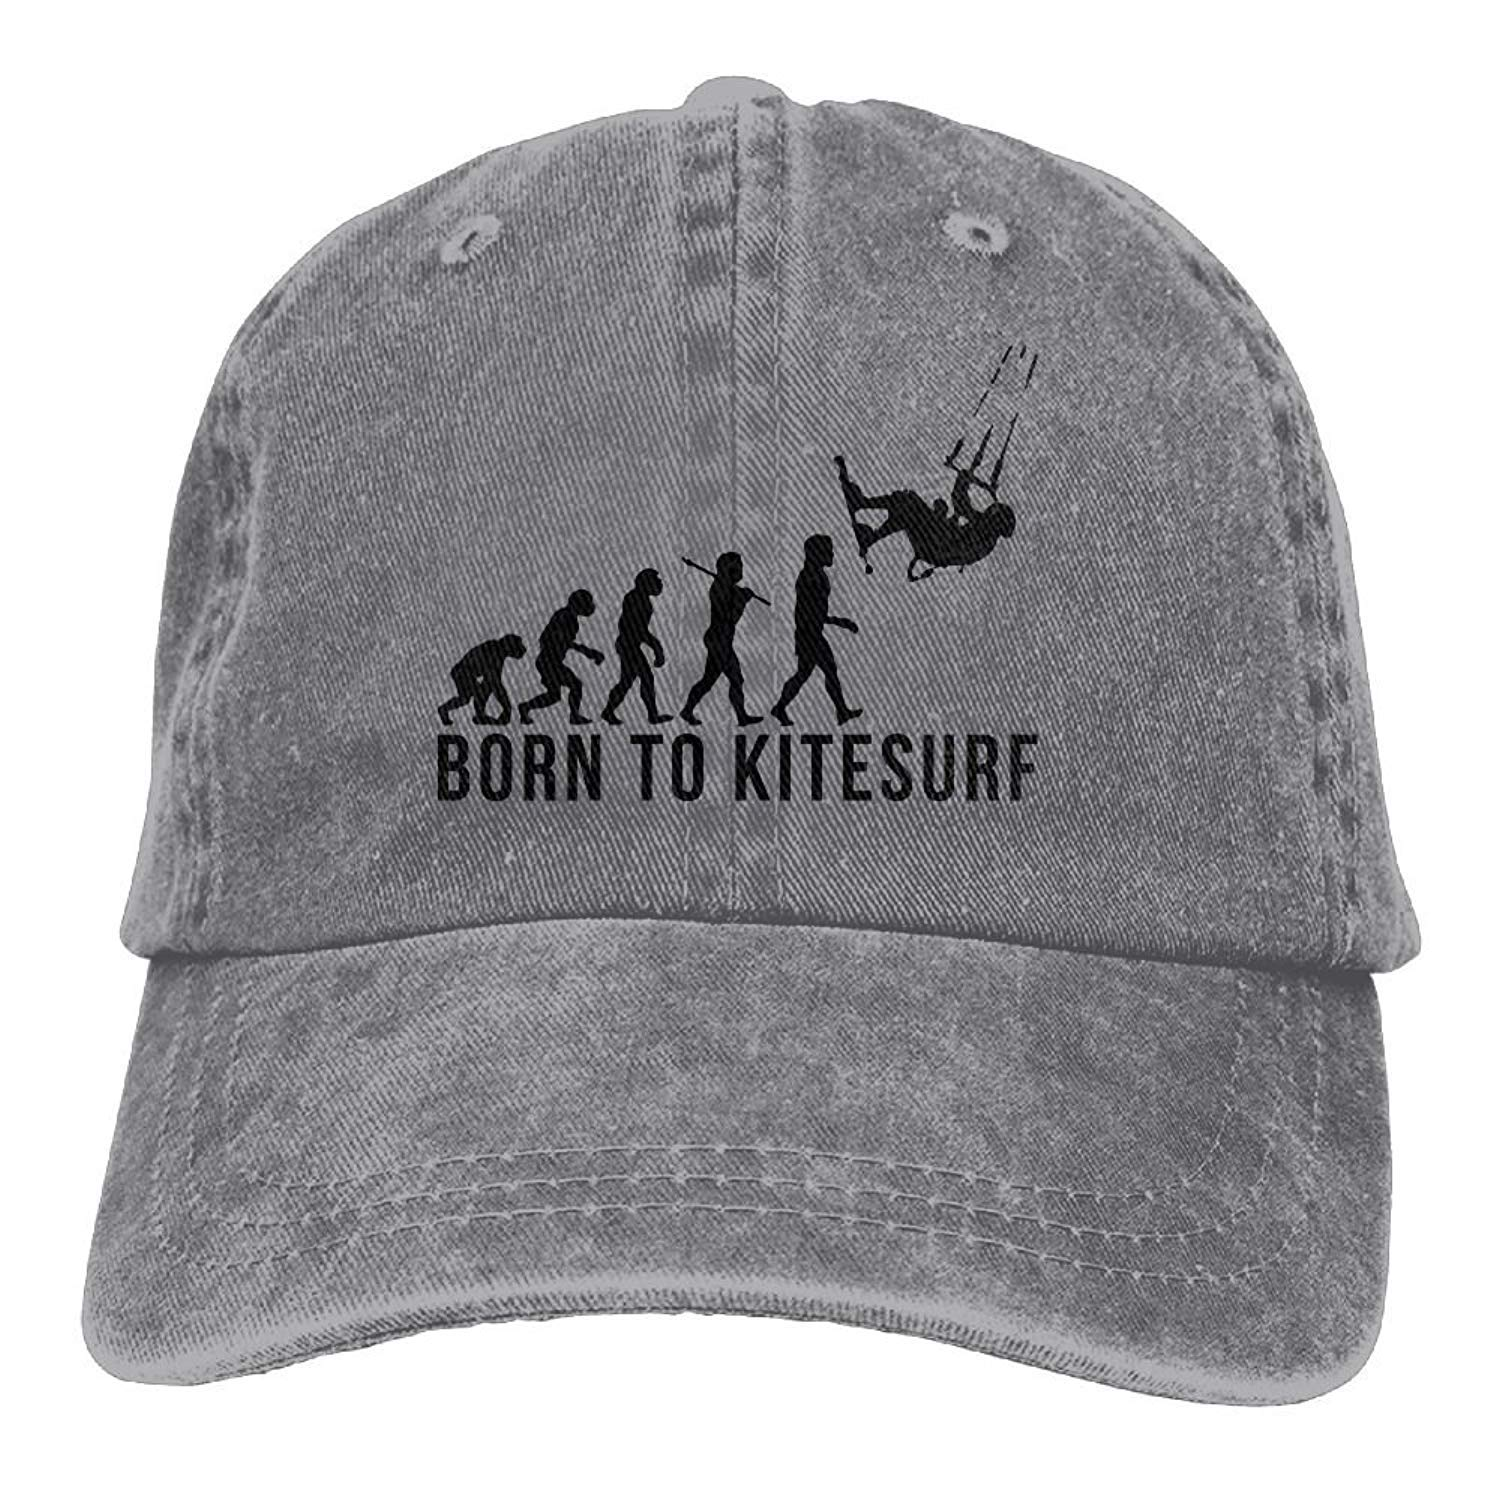 JTRVW Huagestroe Kitesurfing Evolution Born to Kitesurf Cowboy Visor Rear Cap Adjustable Cap